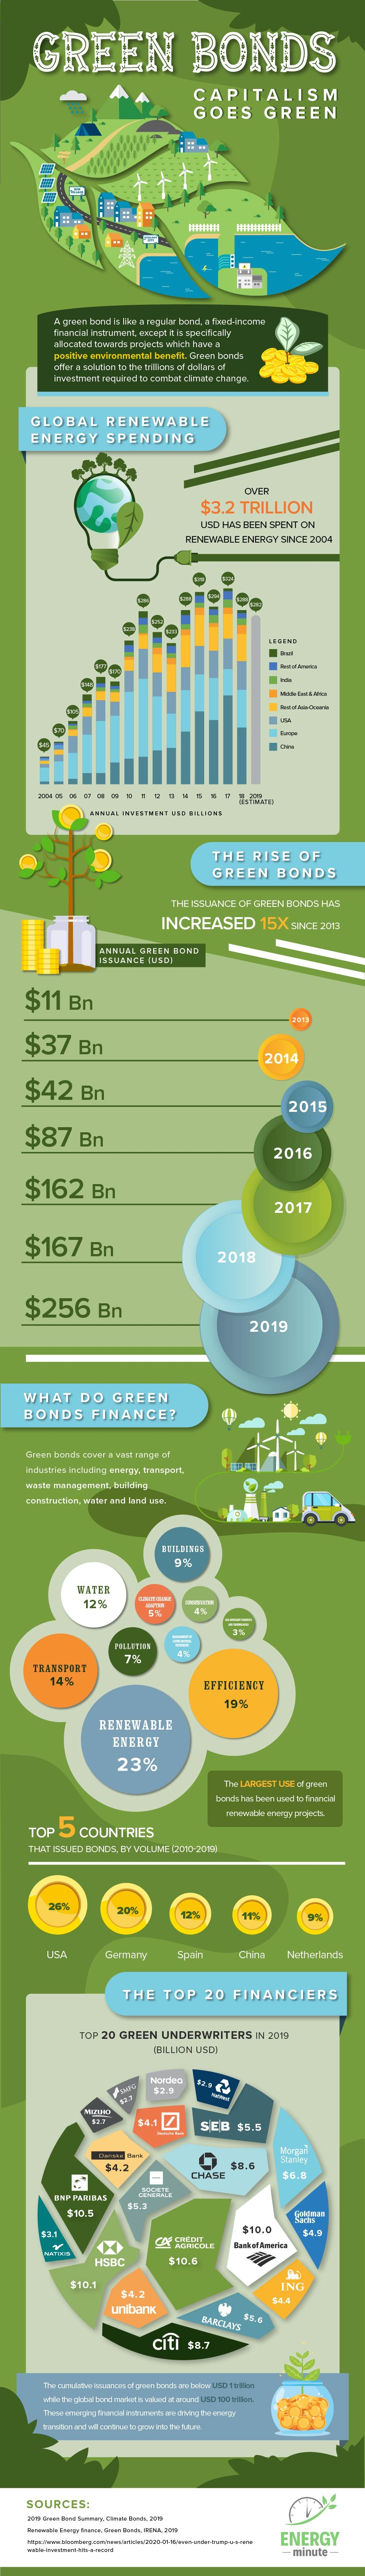 Green Bonds: Capitalism is Going Green #infographic